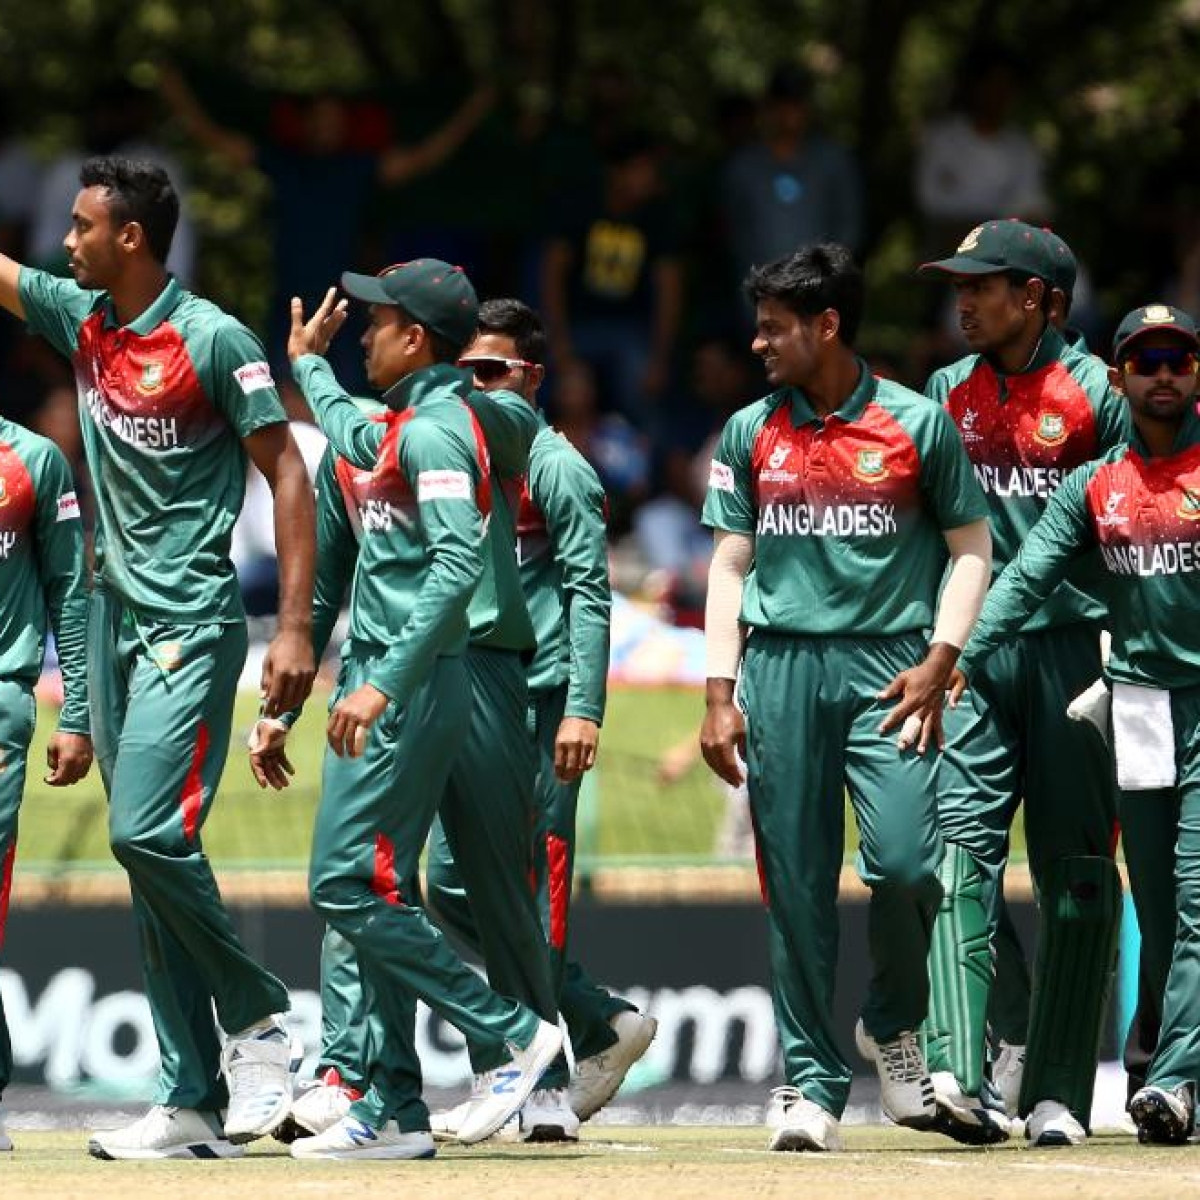 U-19 WC IND vs BAN: Bangladesh defeat India by 3 wickets to win their first U-19 World Cup trophy